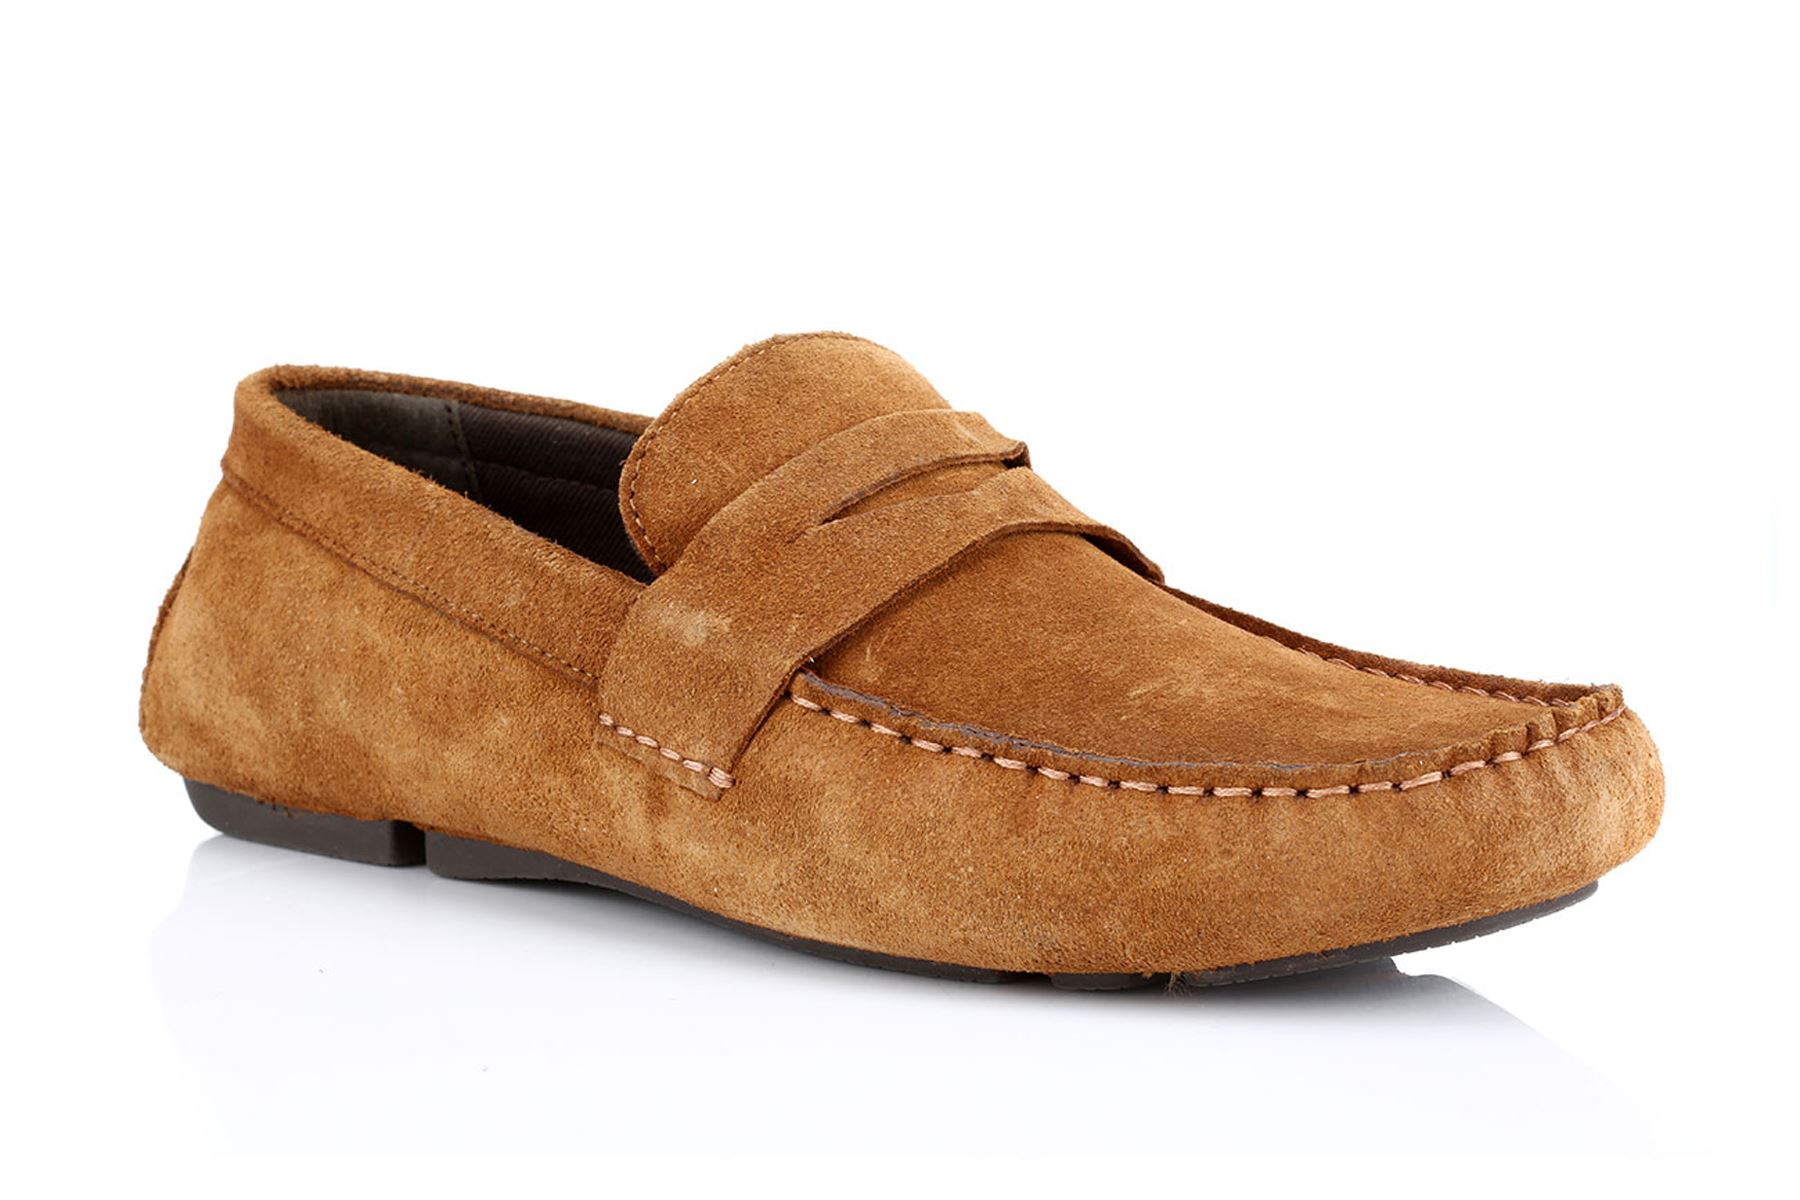 fc5833b16c8 Details about Red Tape Cranfield Suede Mens Casual Driving Shoes Tan Brown  Leather